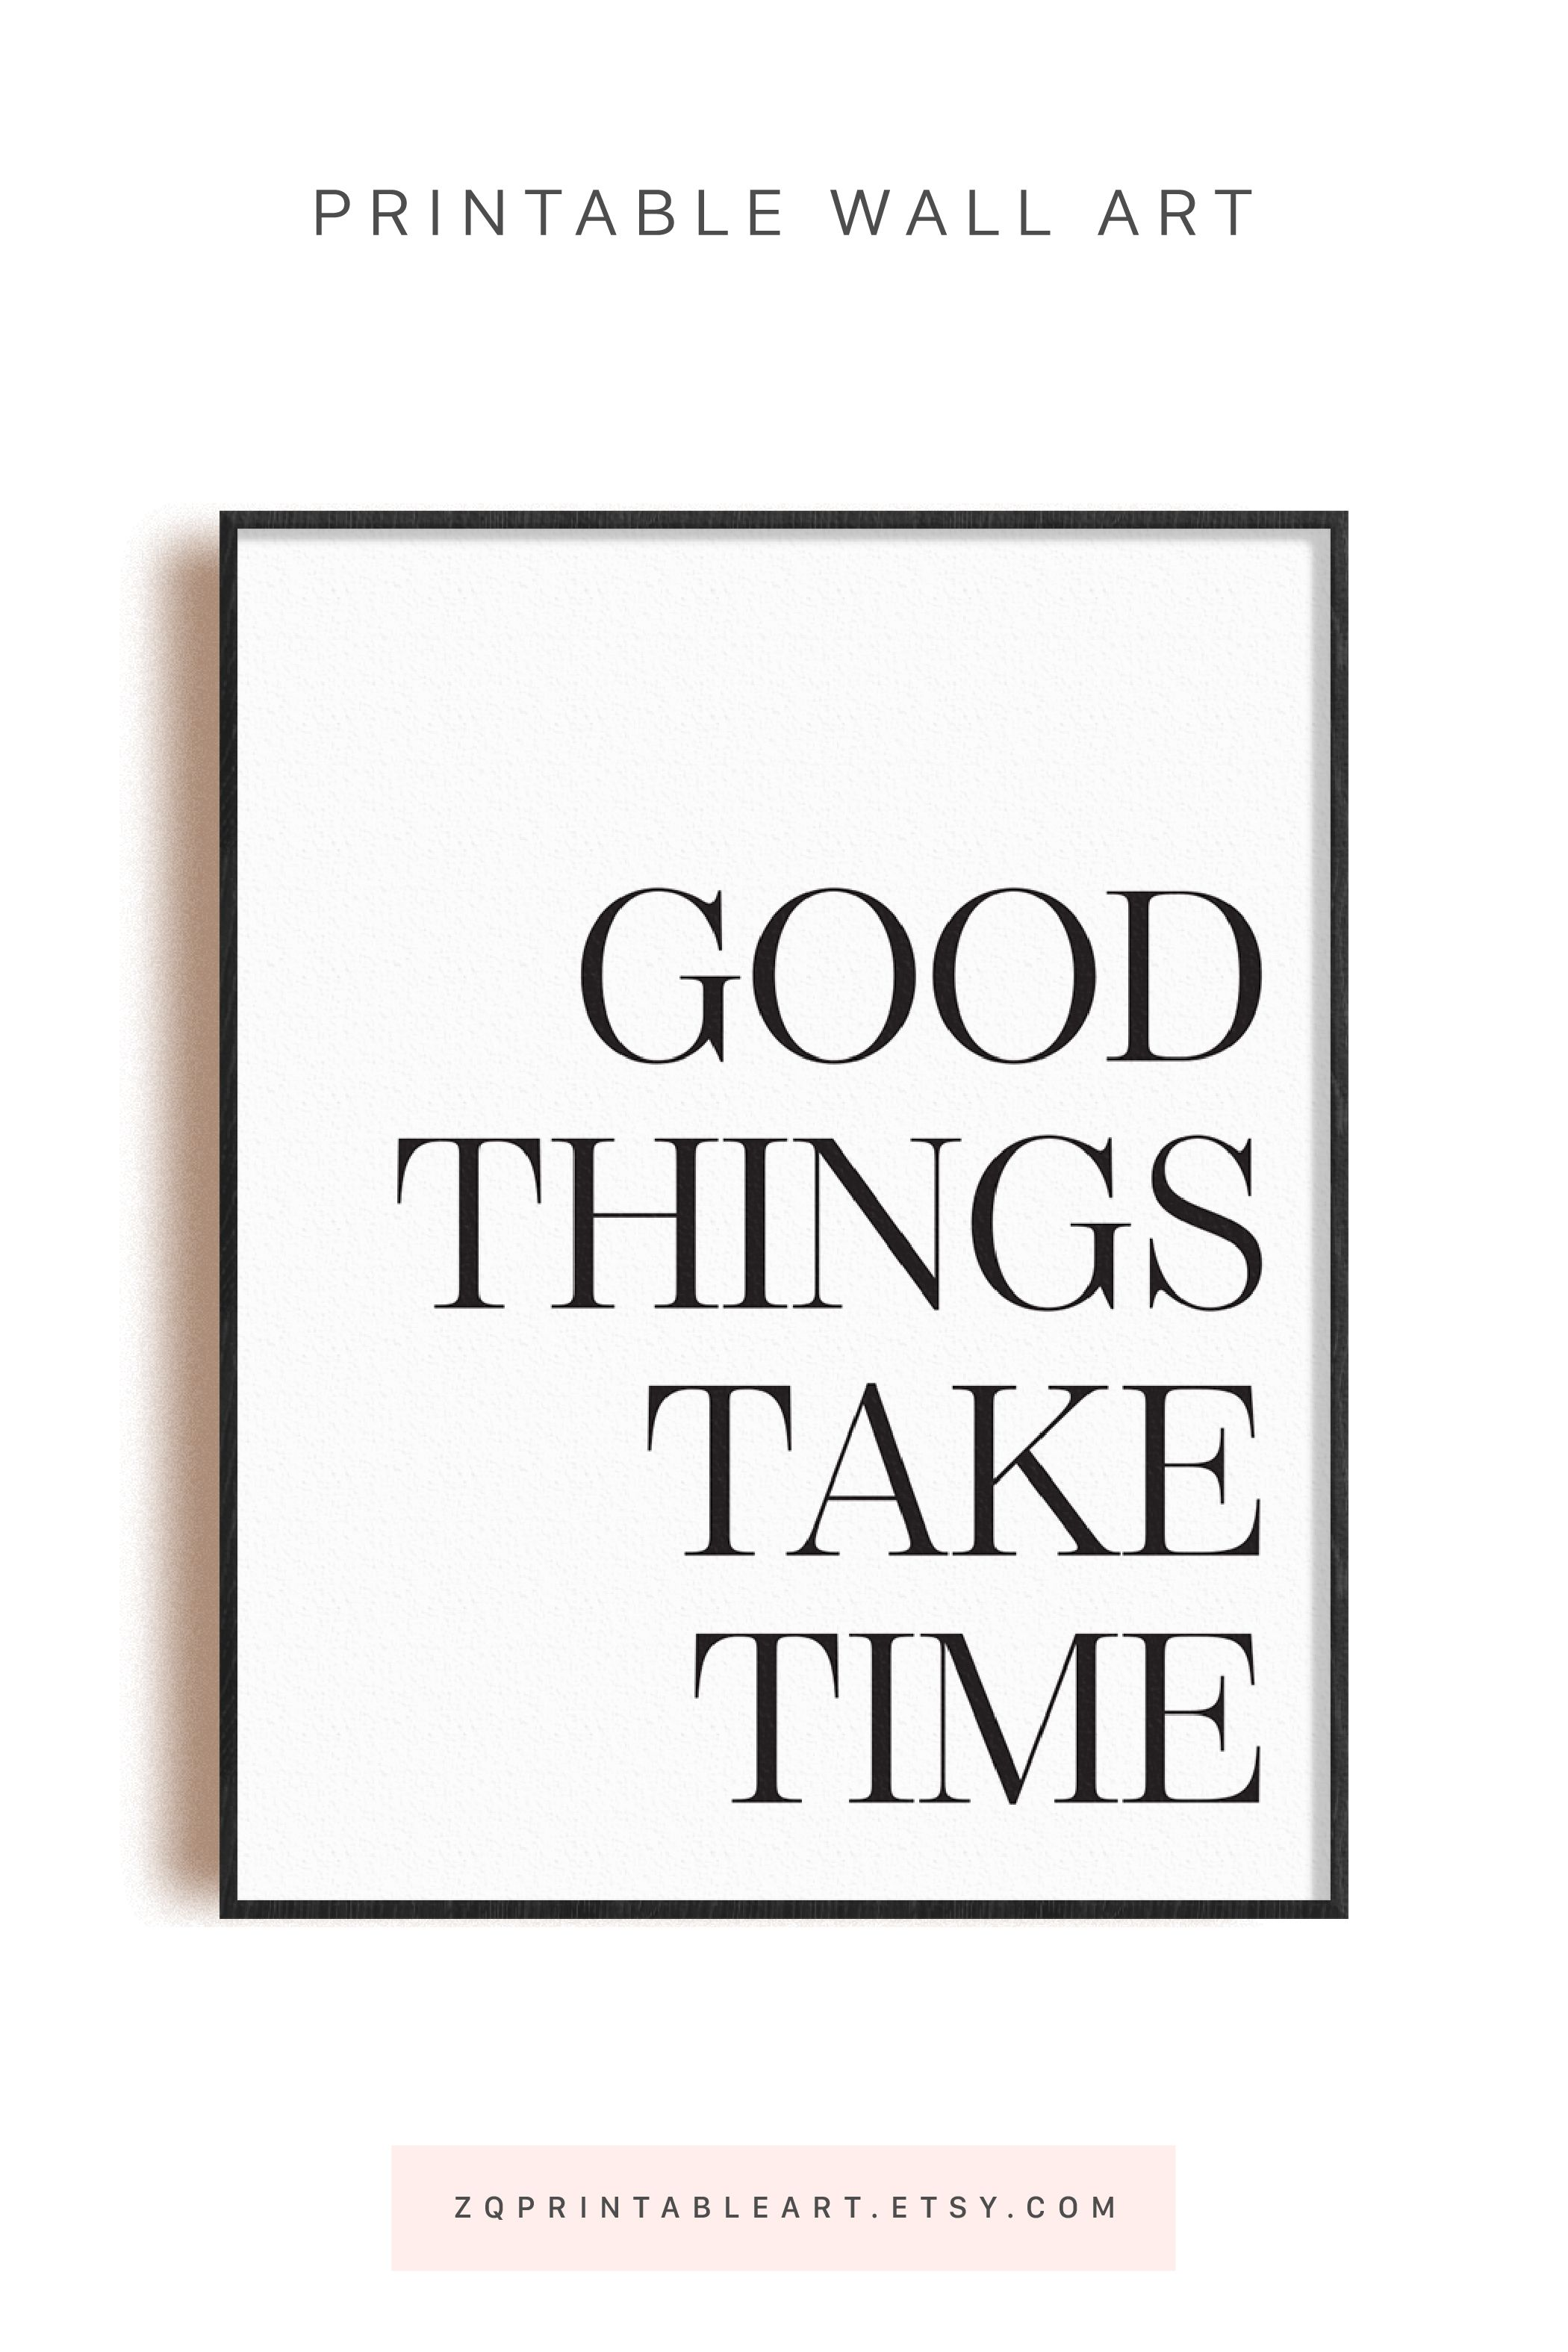 Modern Wall Decor Printable Download Good Things Take Time Quote Prints Printable Posters Wall Art Typography Poster